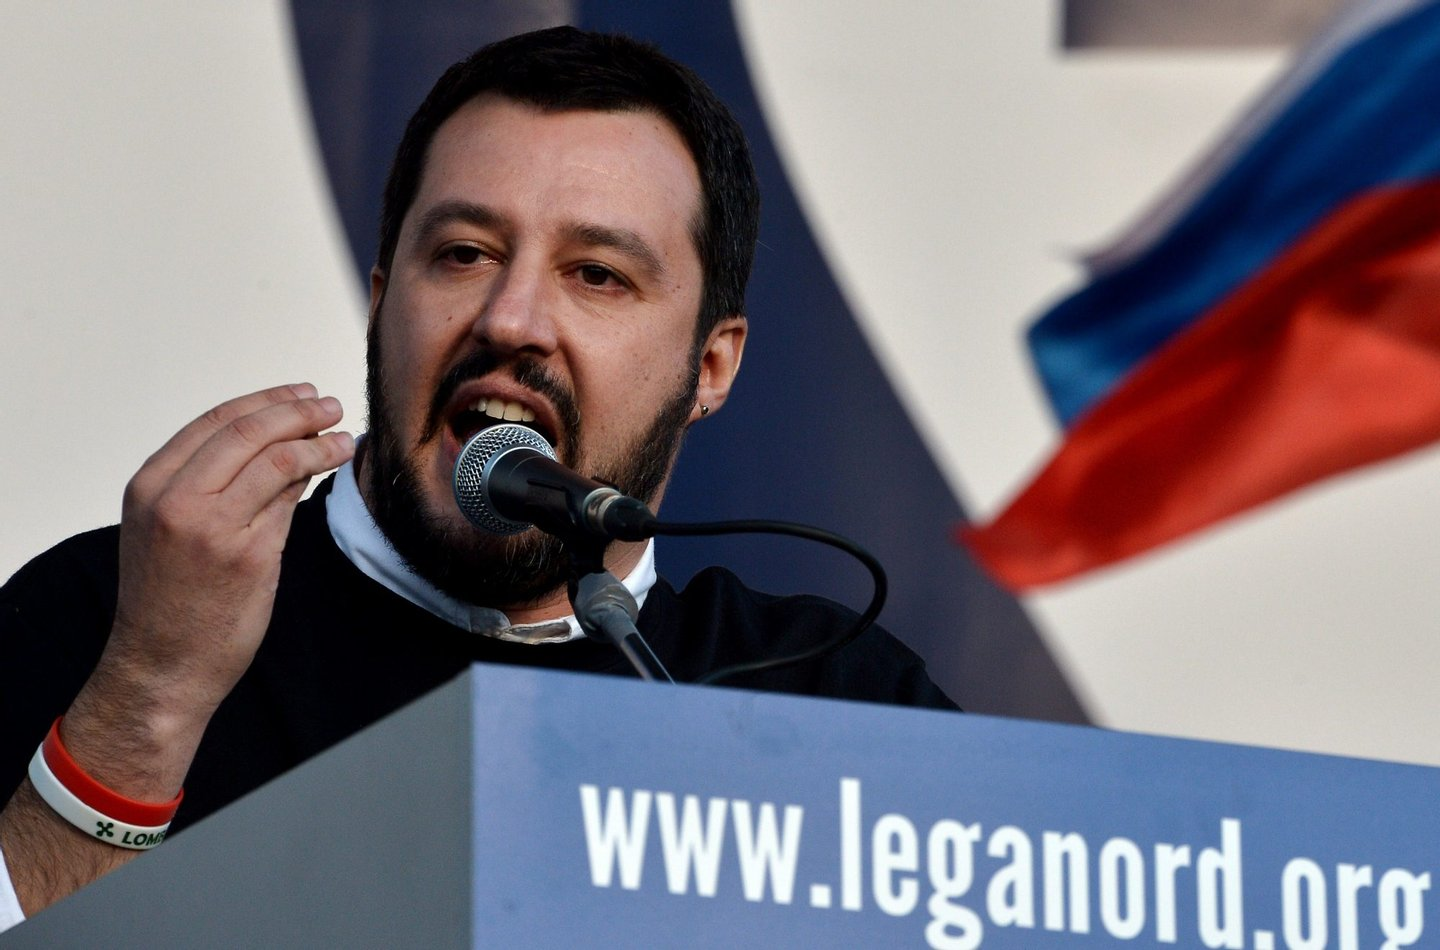 Italian Northern League (Lega Nord) party leader Matteo Salvini speaks during a rally against the Italian government's policy in Rome on February 28, 2015. AFP PHOTO / TIZIANA FABI (Photo credit should read TIZIANA FABI/AFP/Getty Images)